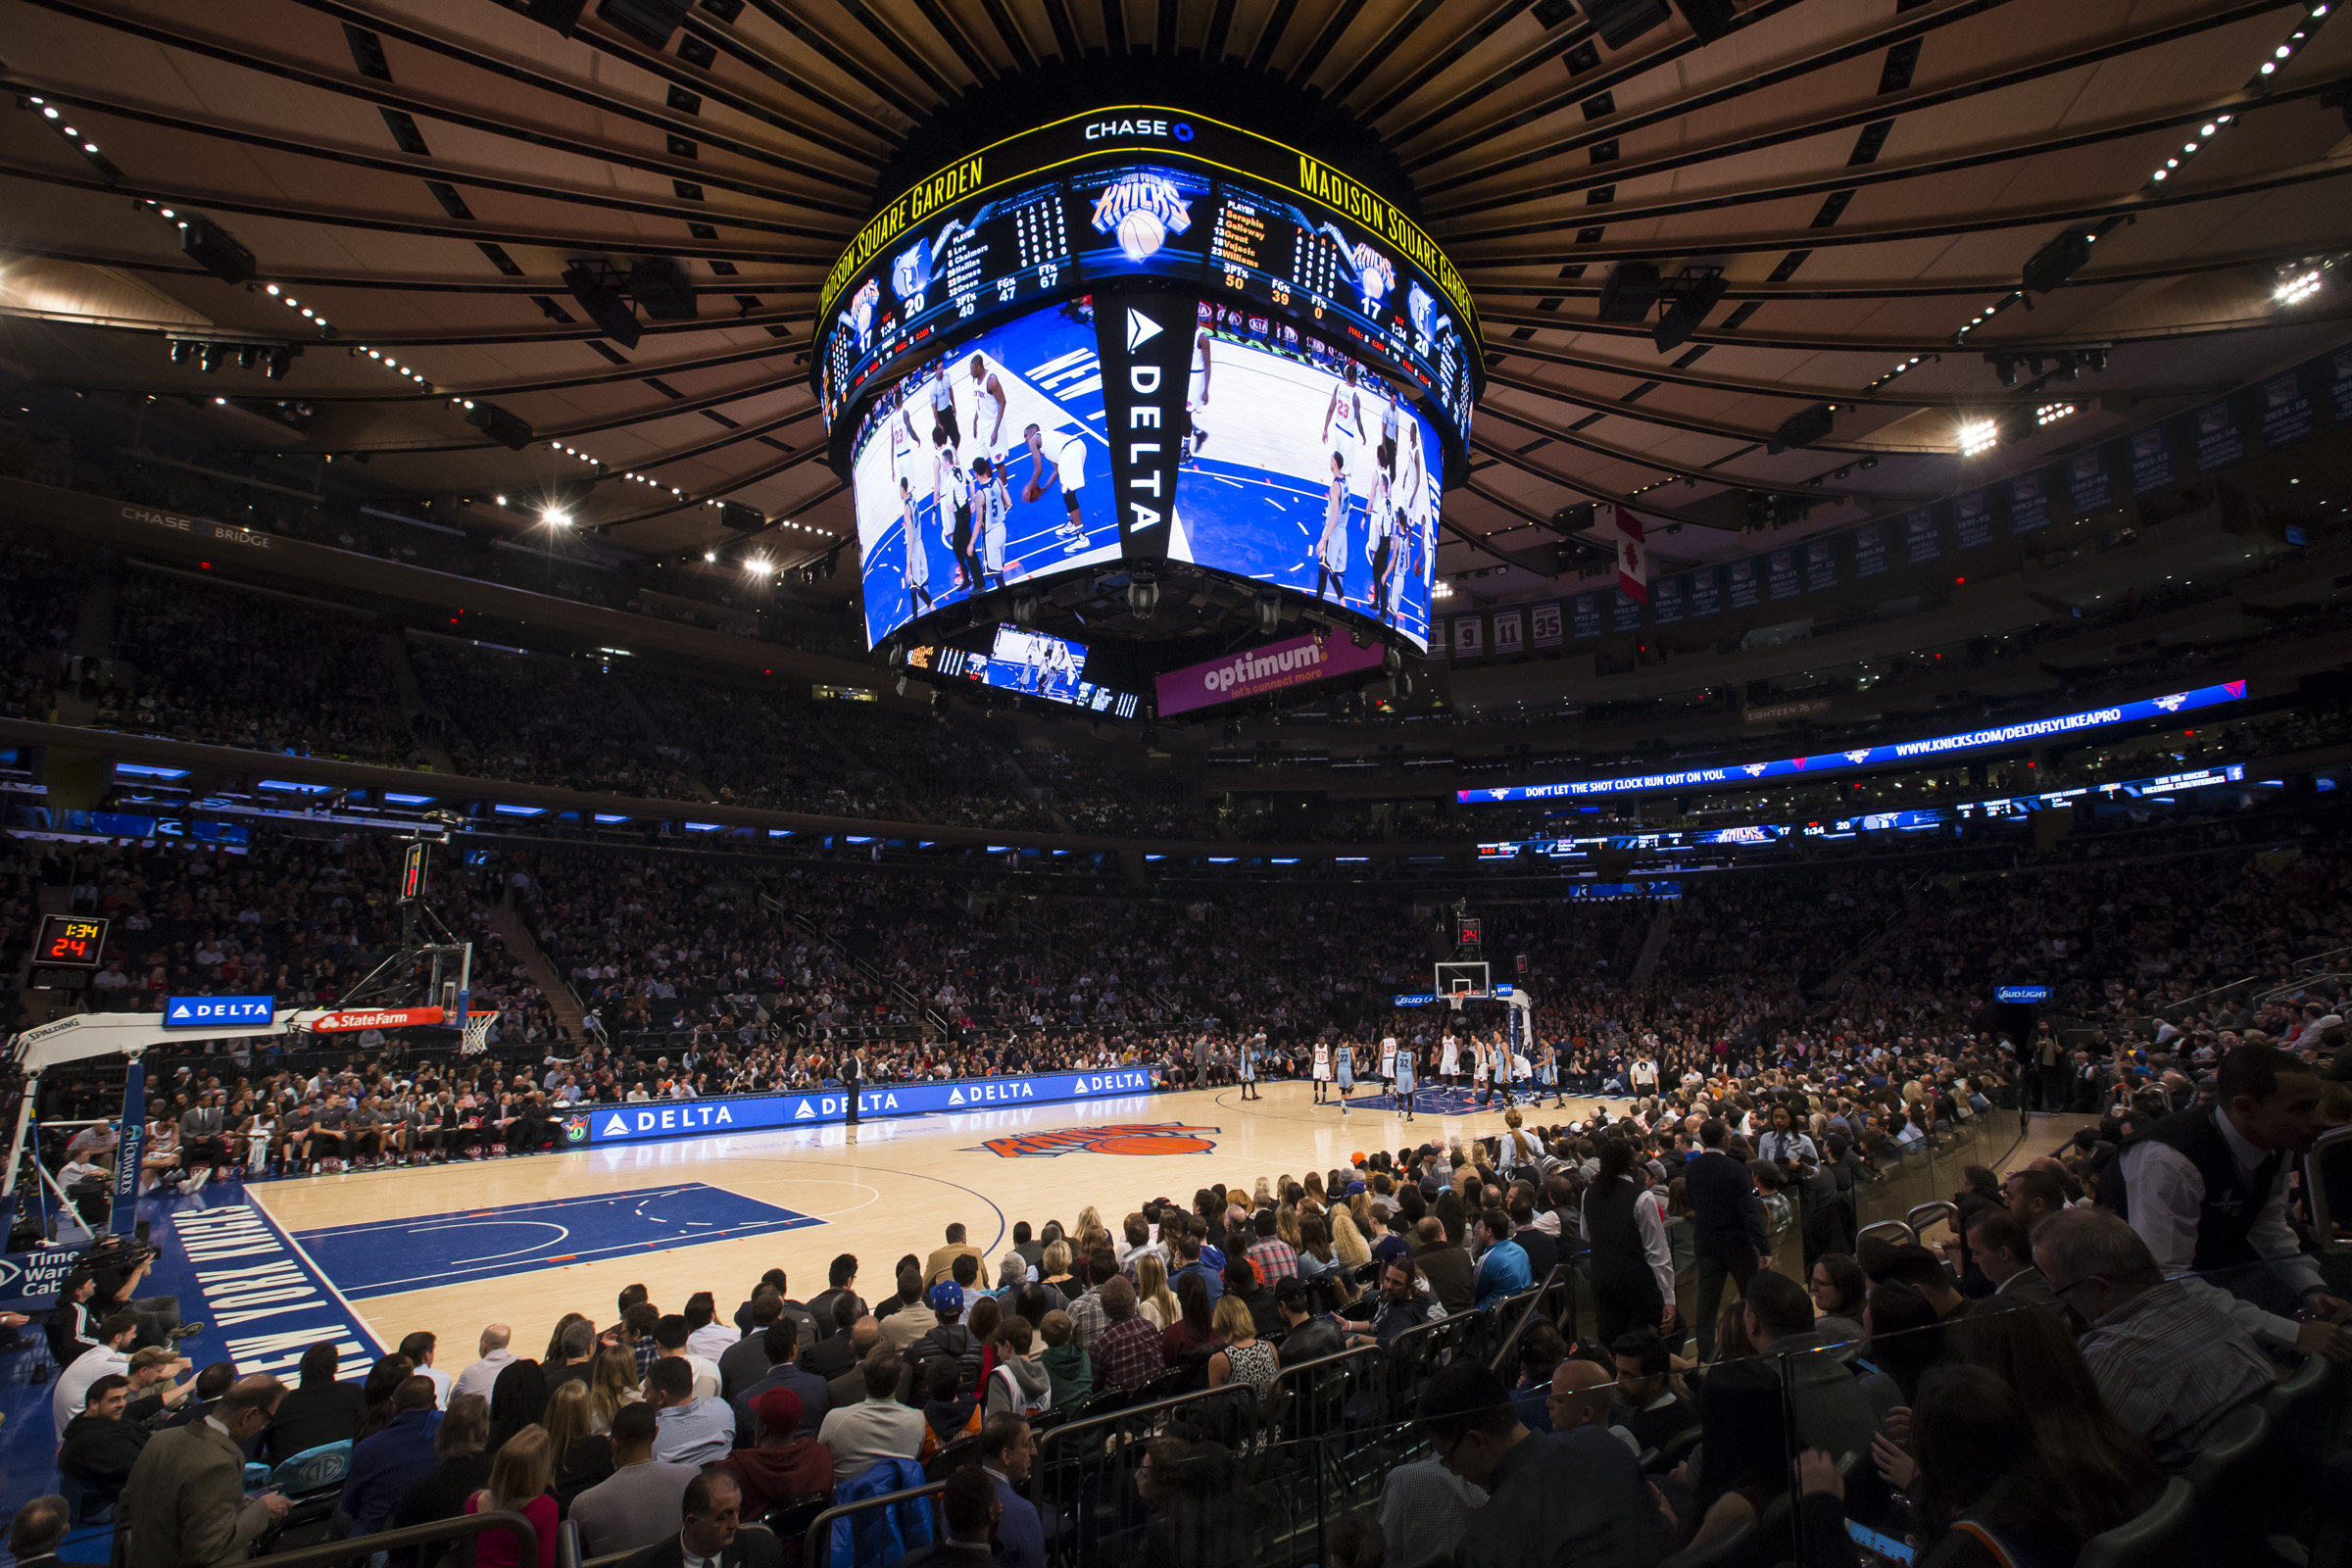 Madison Square Garden: Delta Renews, Expands Signature Partnership With Madison